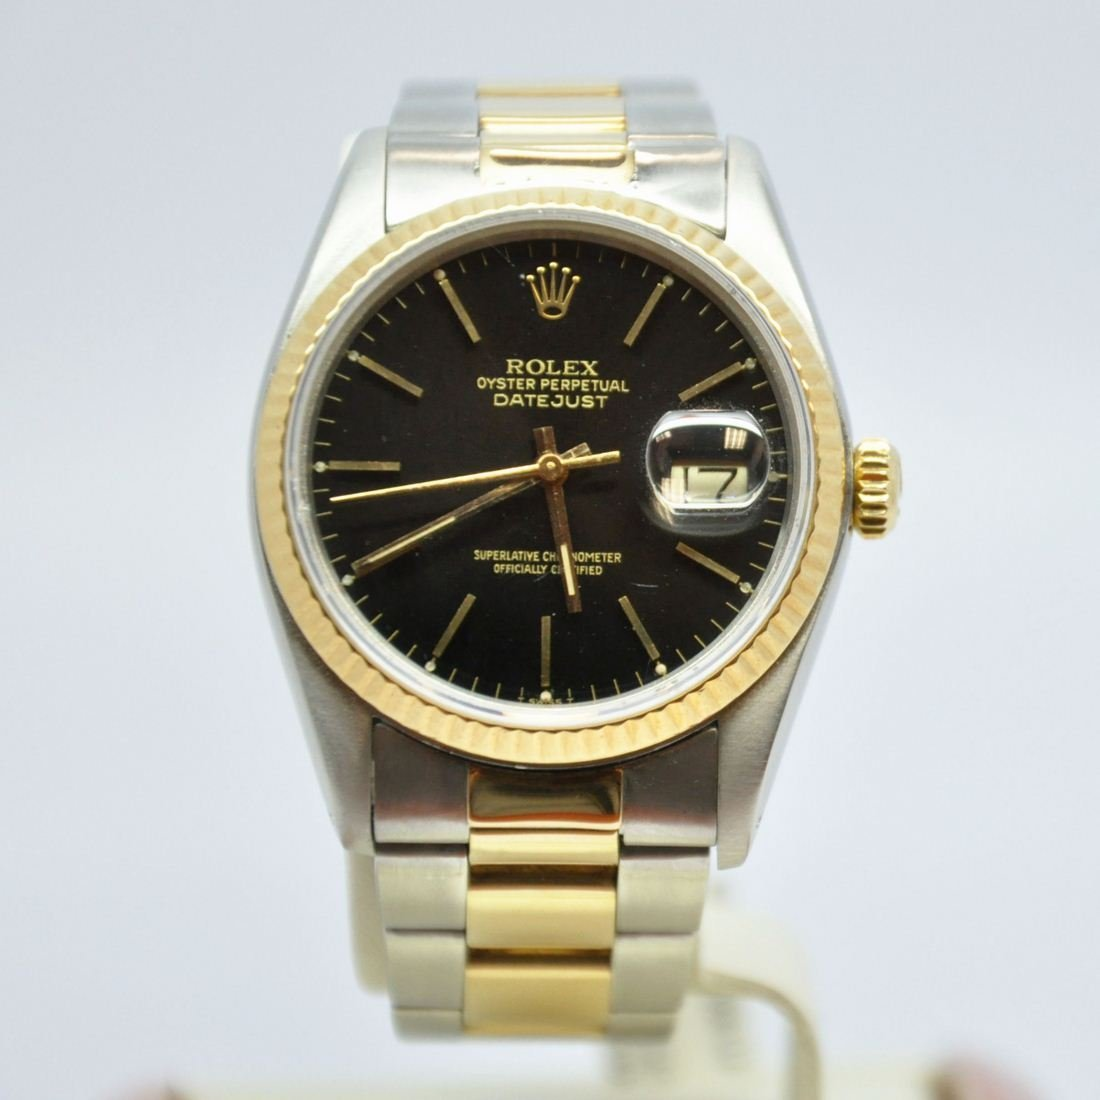 Rolex Oyster Perpetual DateJust Day-date 2 Two tone